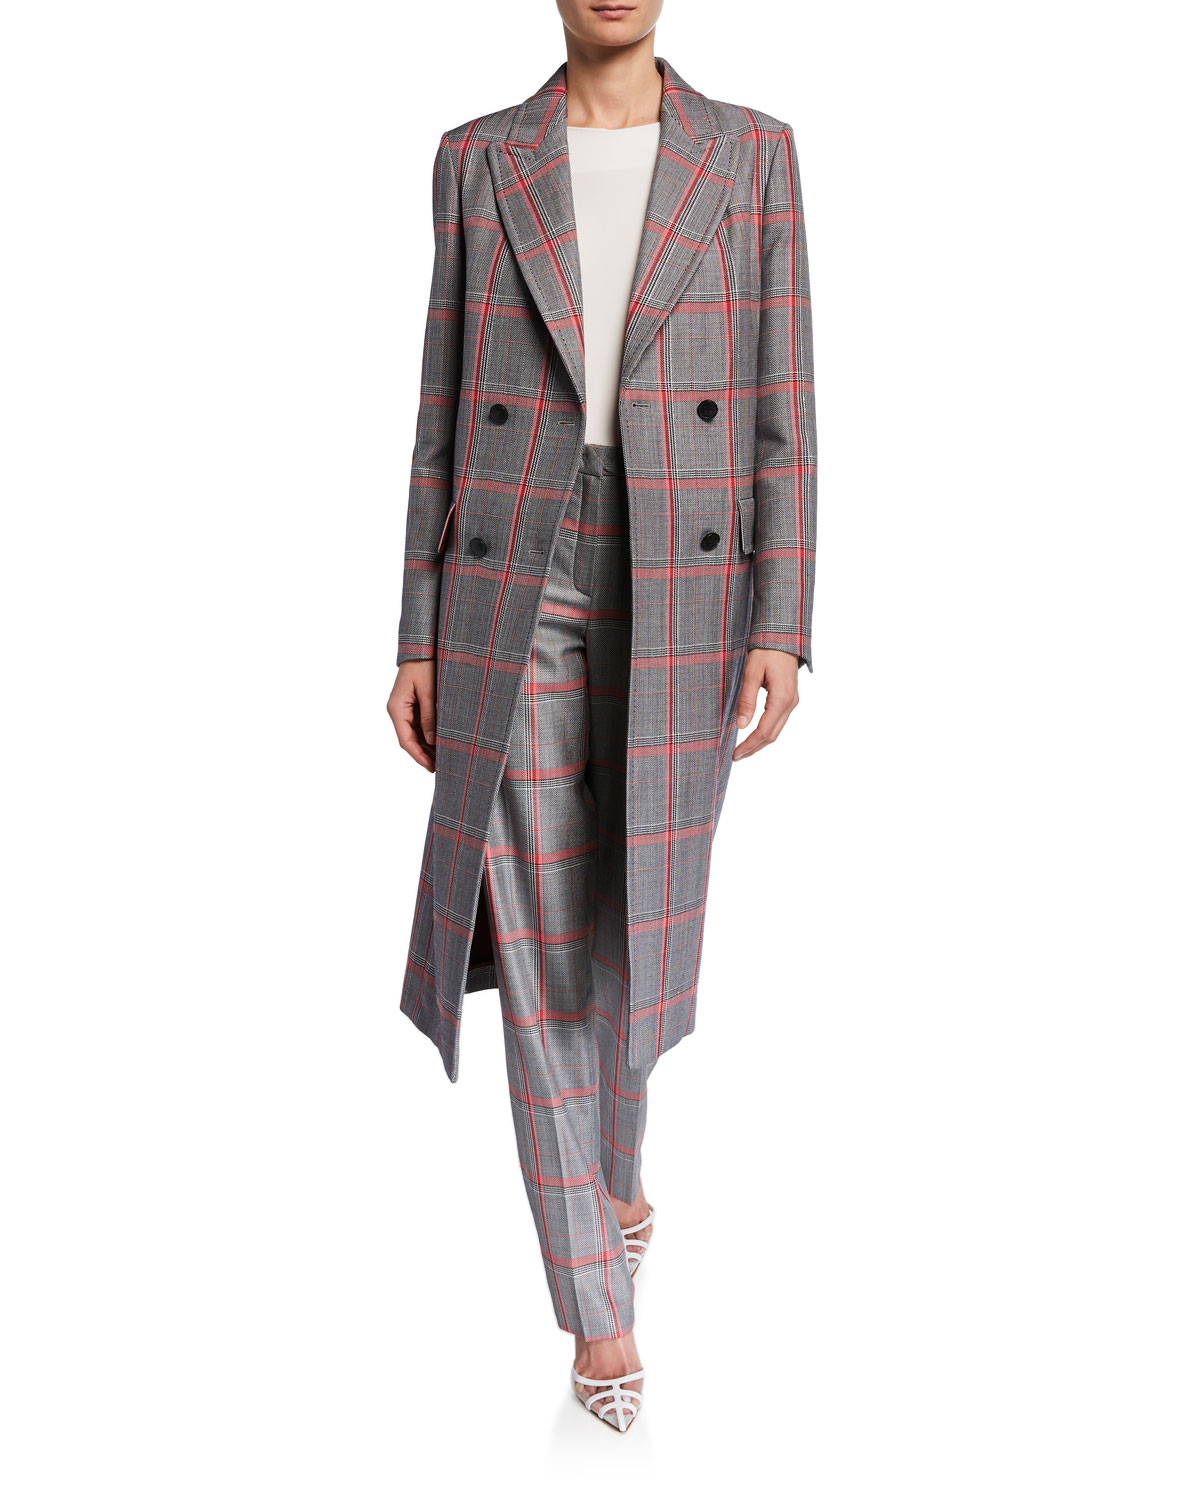 Glen Plaid Double Breasted Trench Coat by Escada